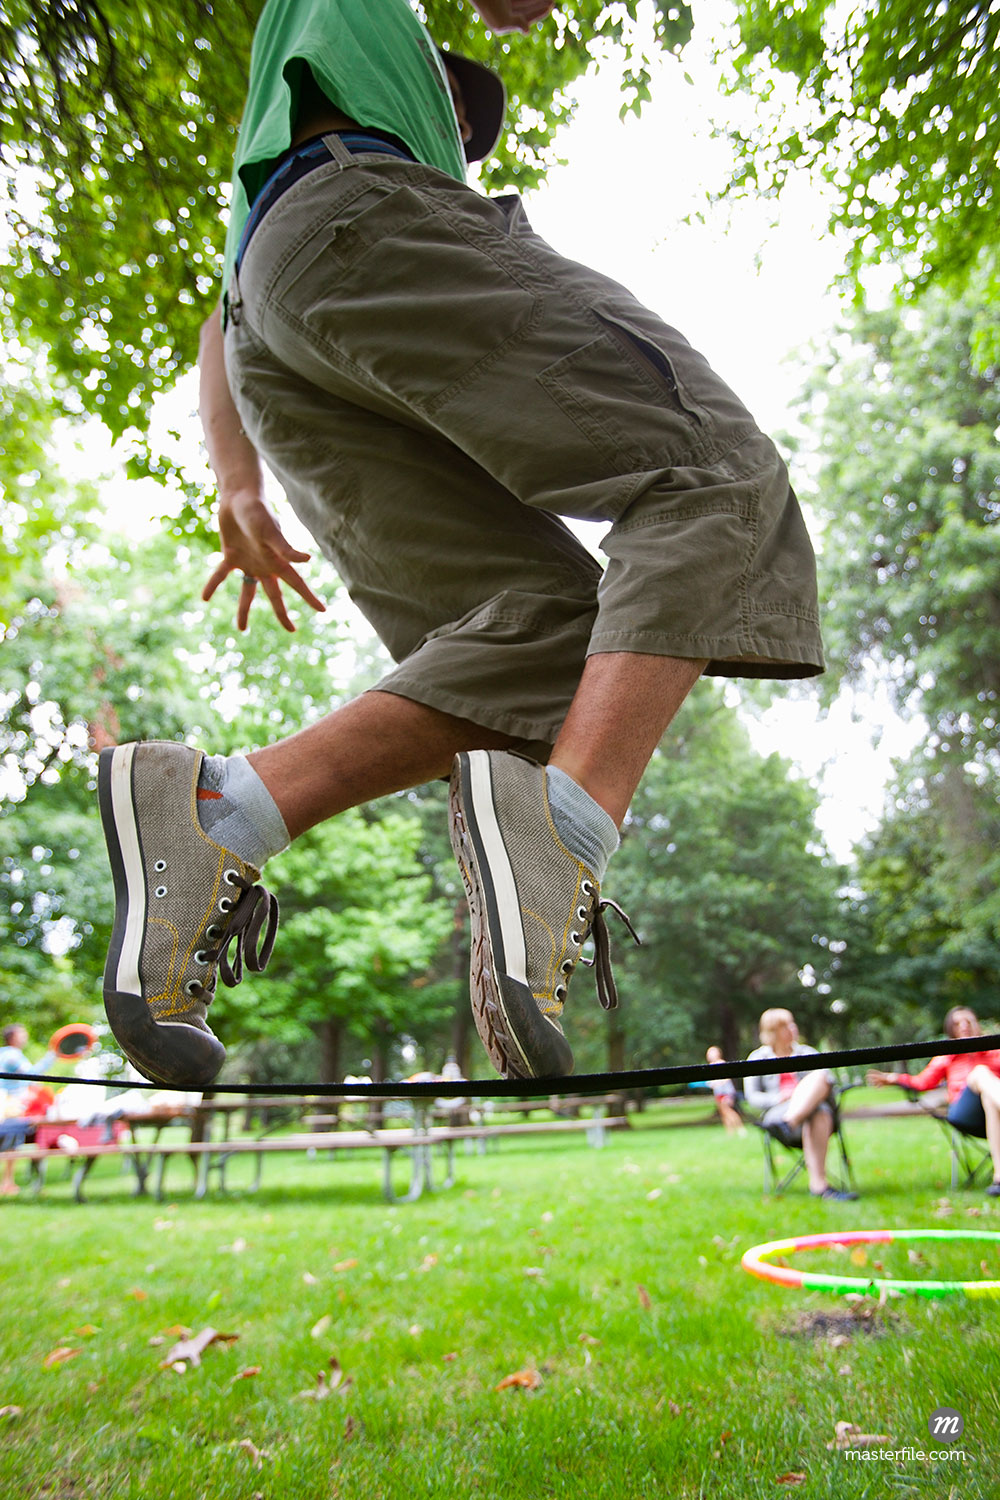 Close-Up of Man on Slackline  ©  Ty Milford / Masterfile